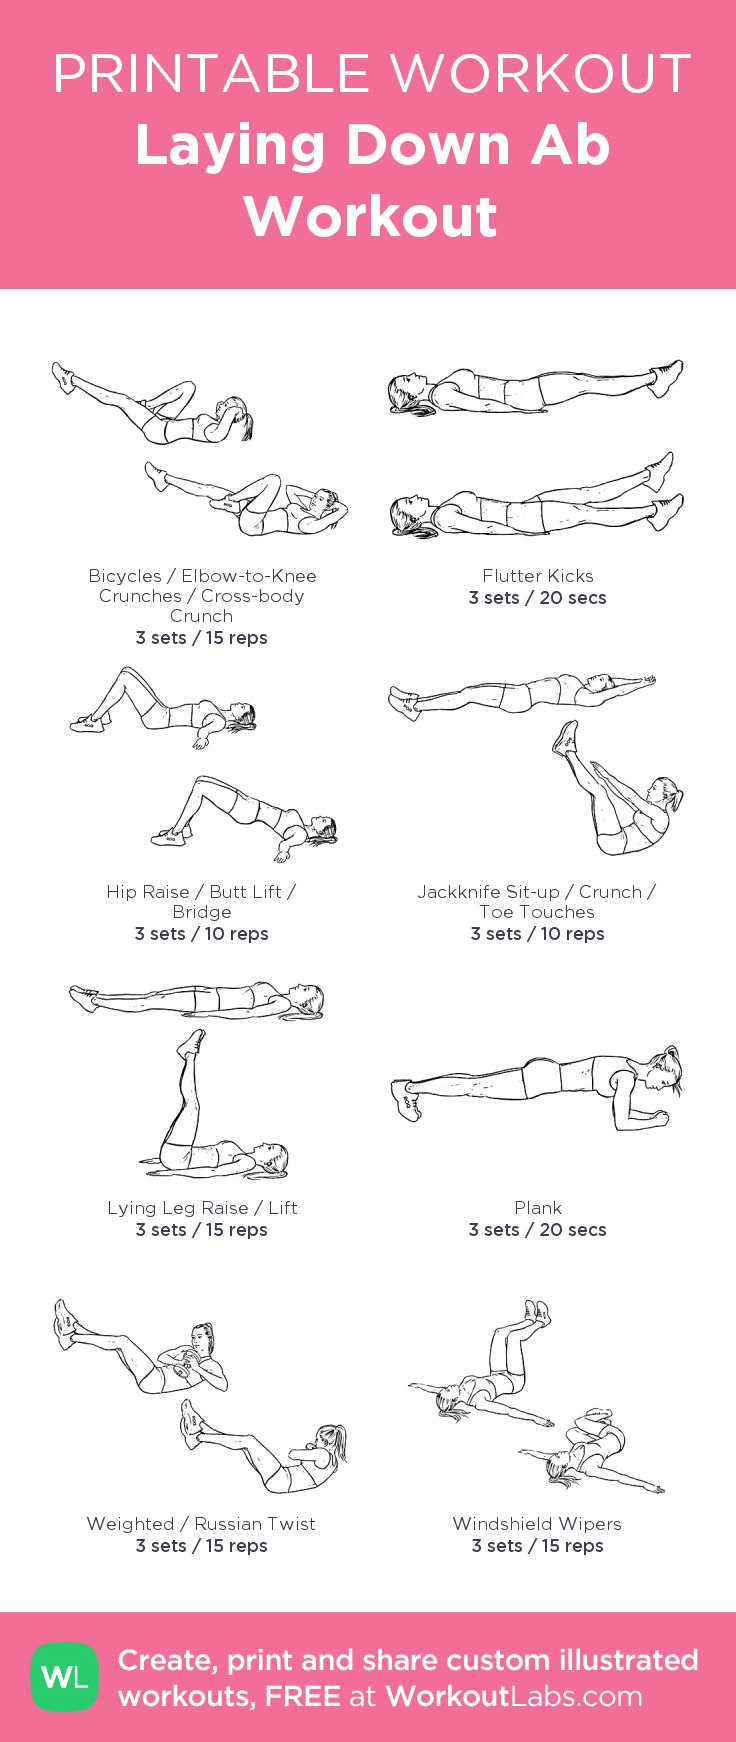 Laying Down Ab Workout